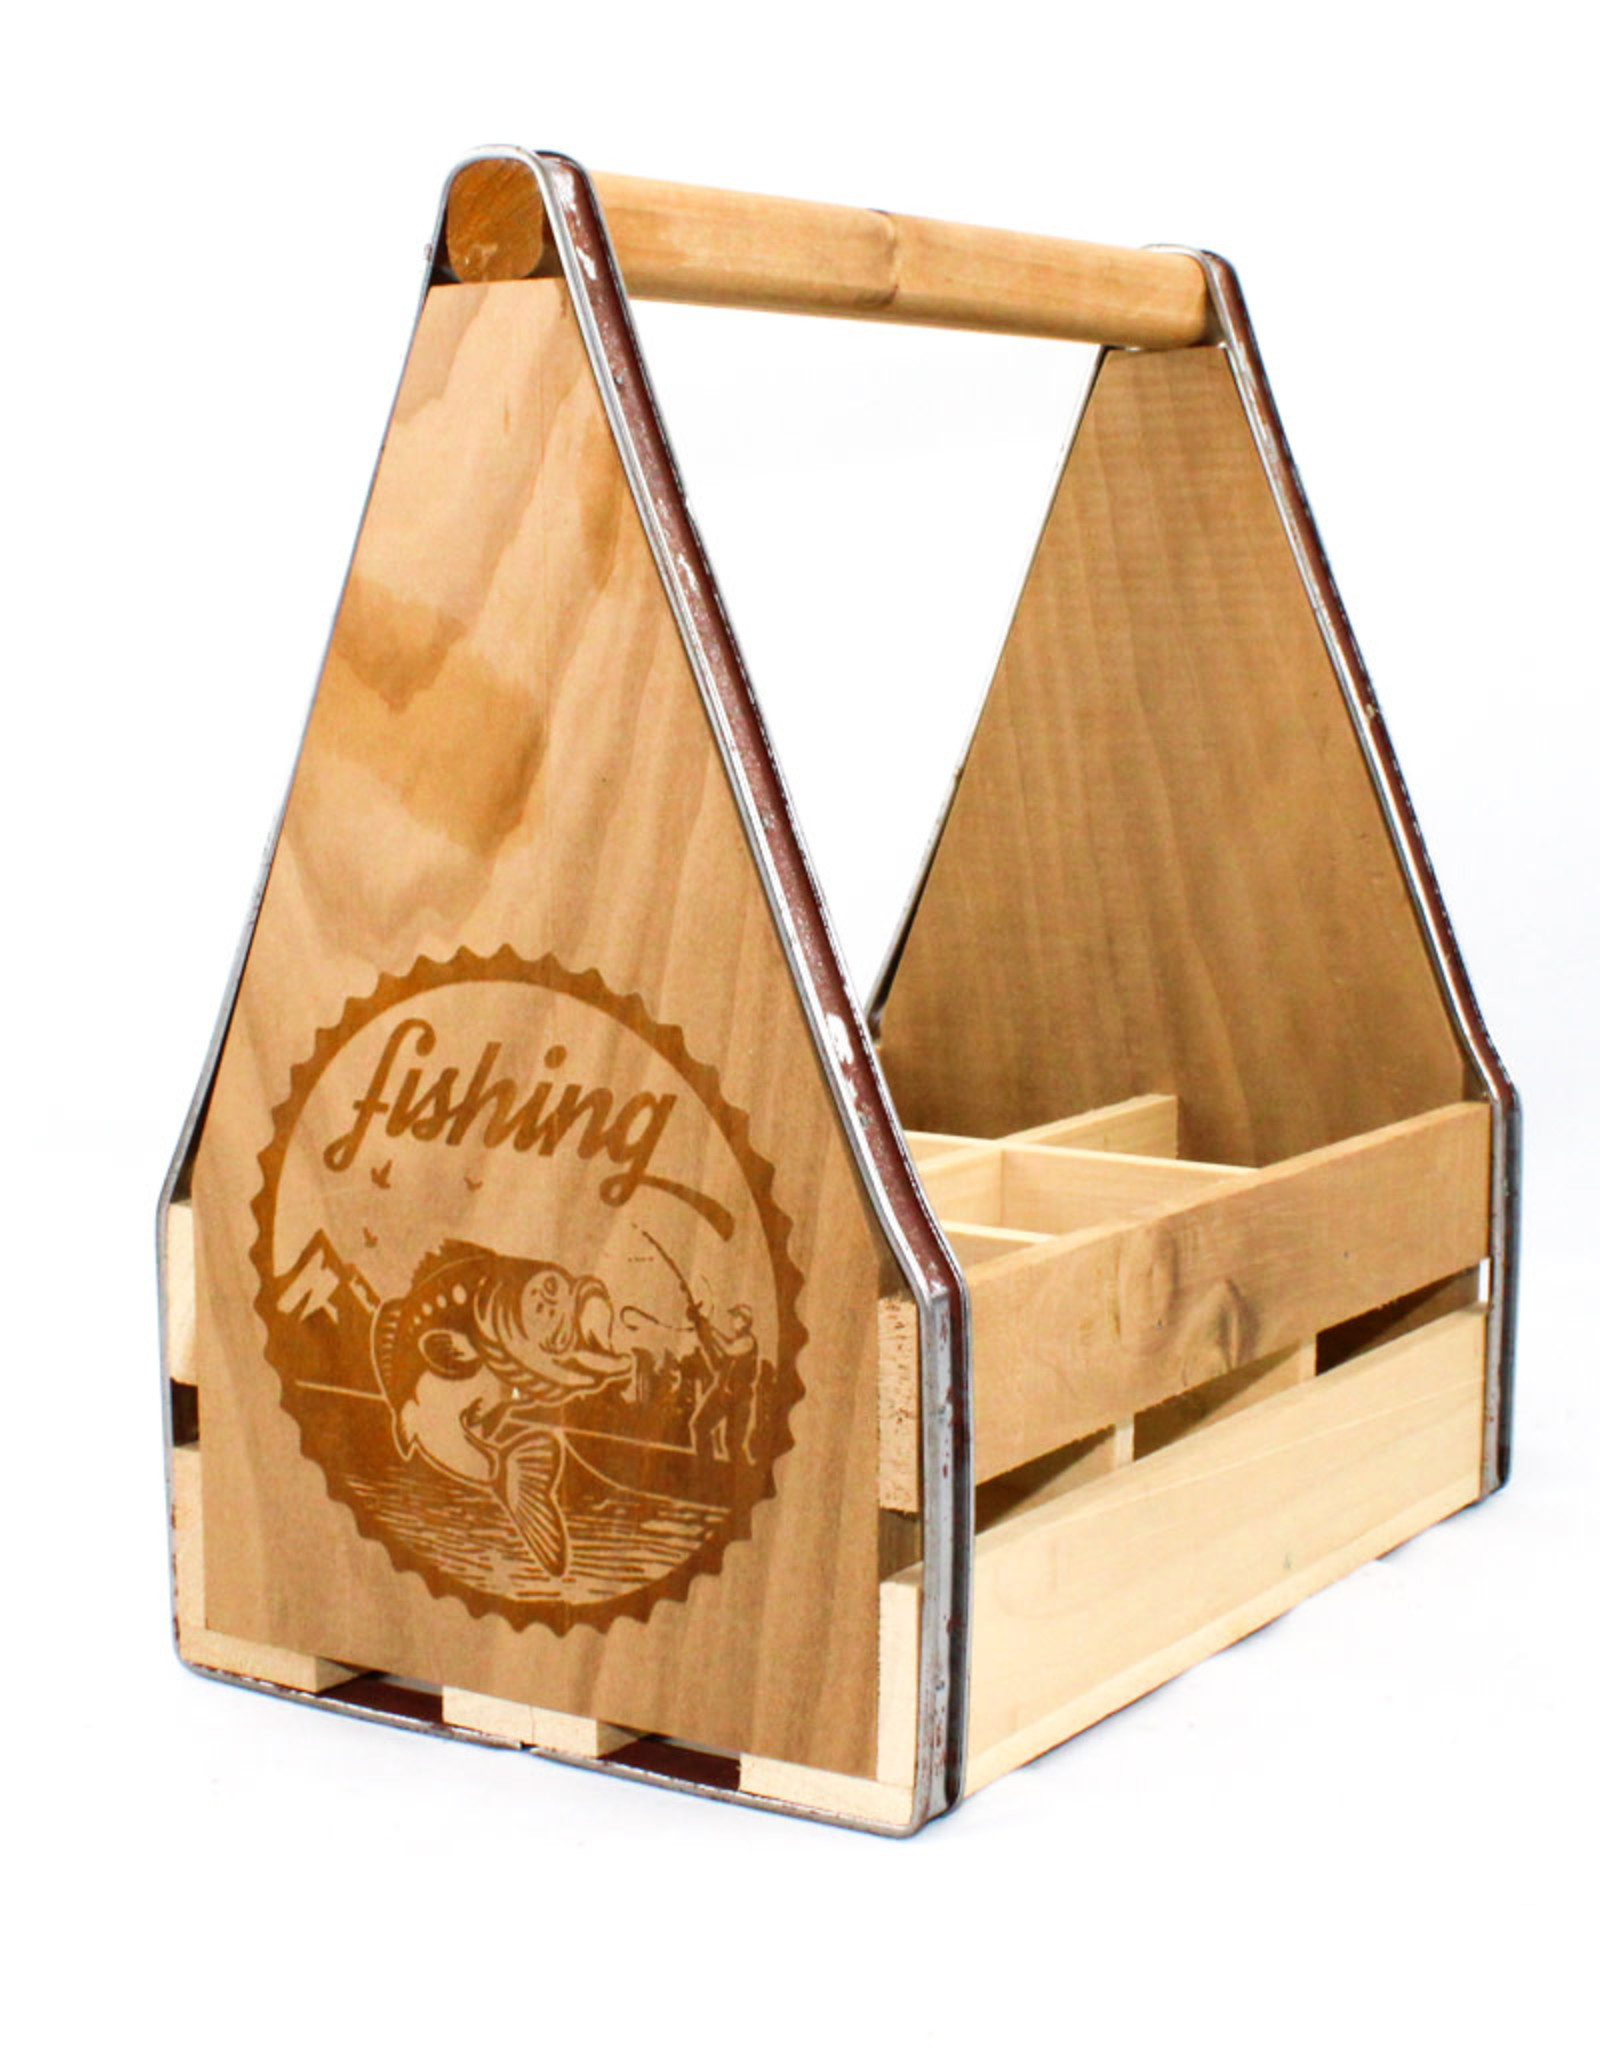 Doles Orchard Beer Tote-Fisherman